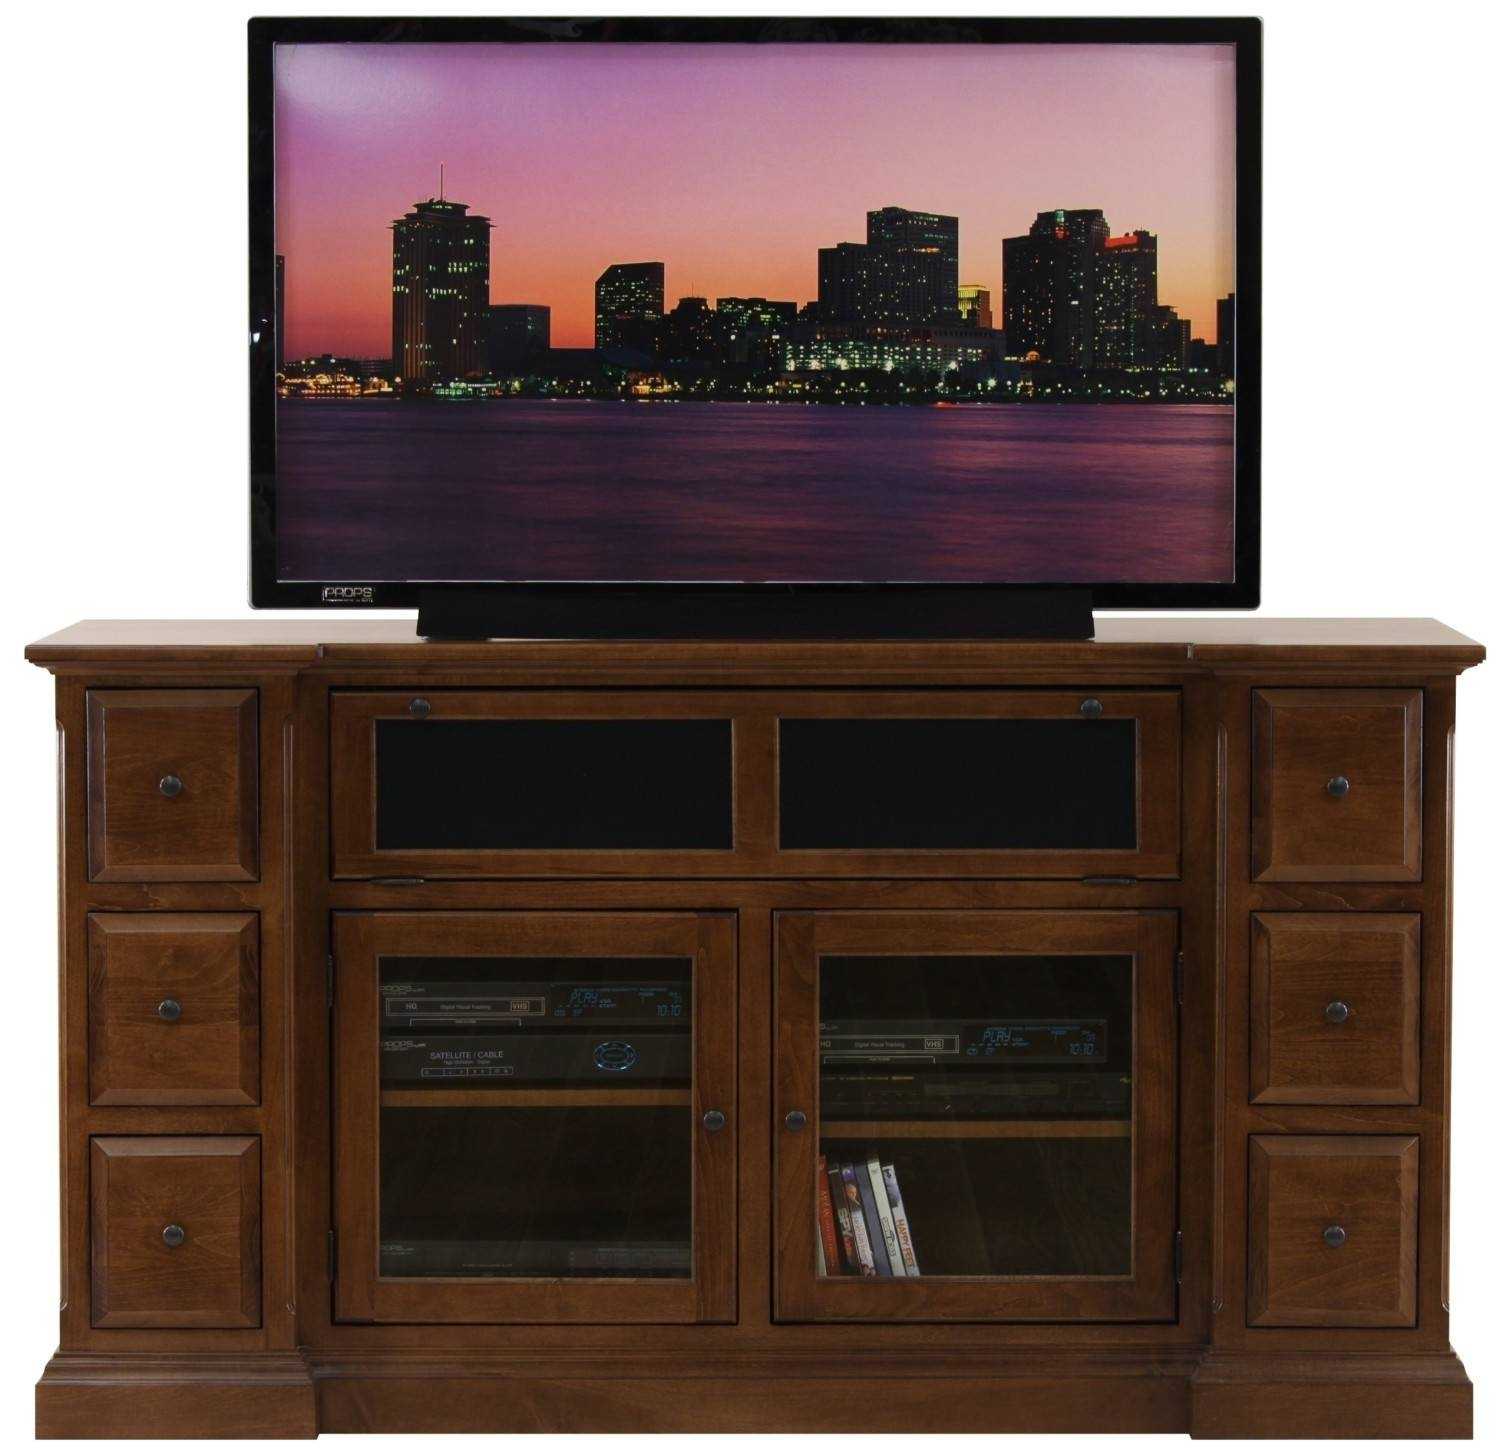 Brown Wooden Tv Stand With Storage With Glass Doors Combined With with Wooden Tv Cabinets With Glass Doors (Image 4 of 15)